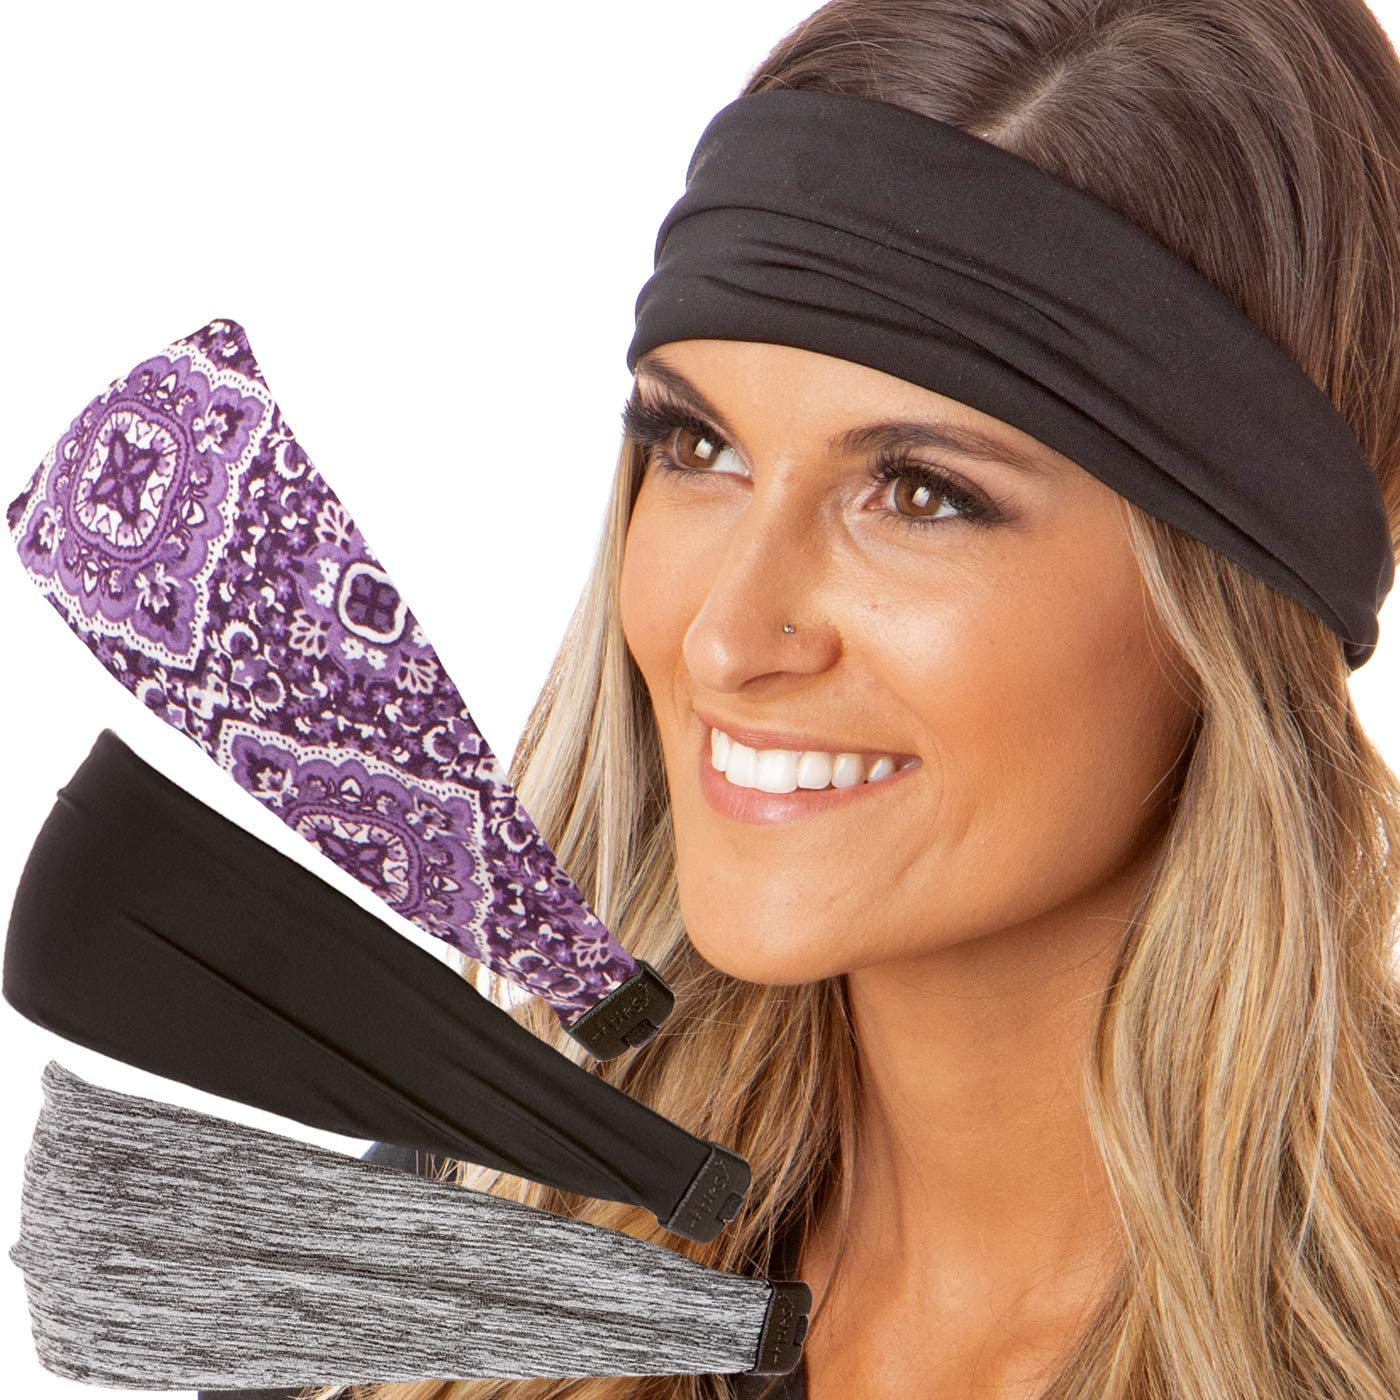 Hipsy Adjustable & Stretchy Printed Xflex Wide Headbands for Women Girls & Teens